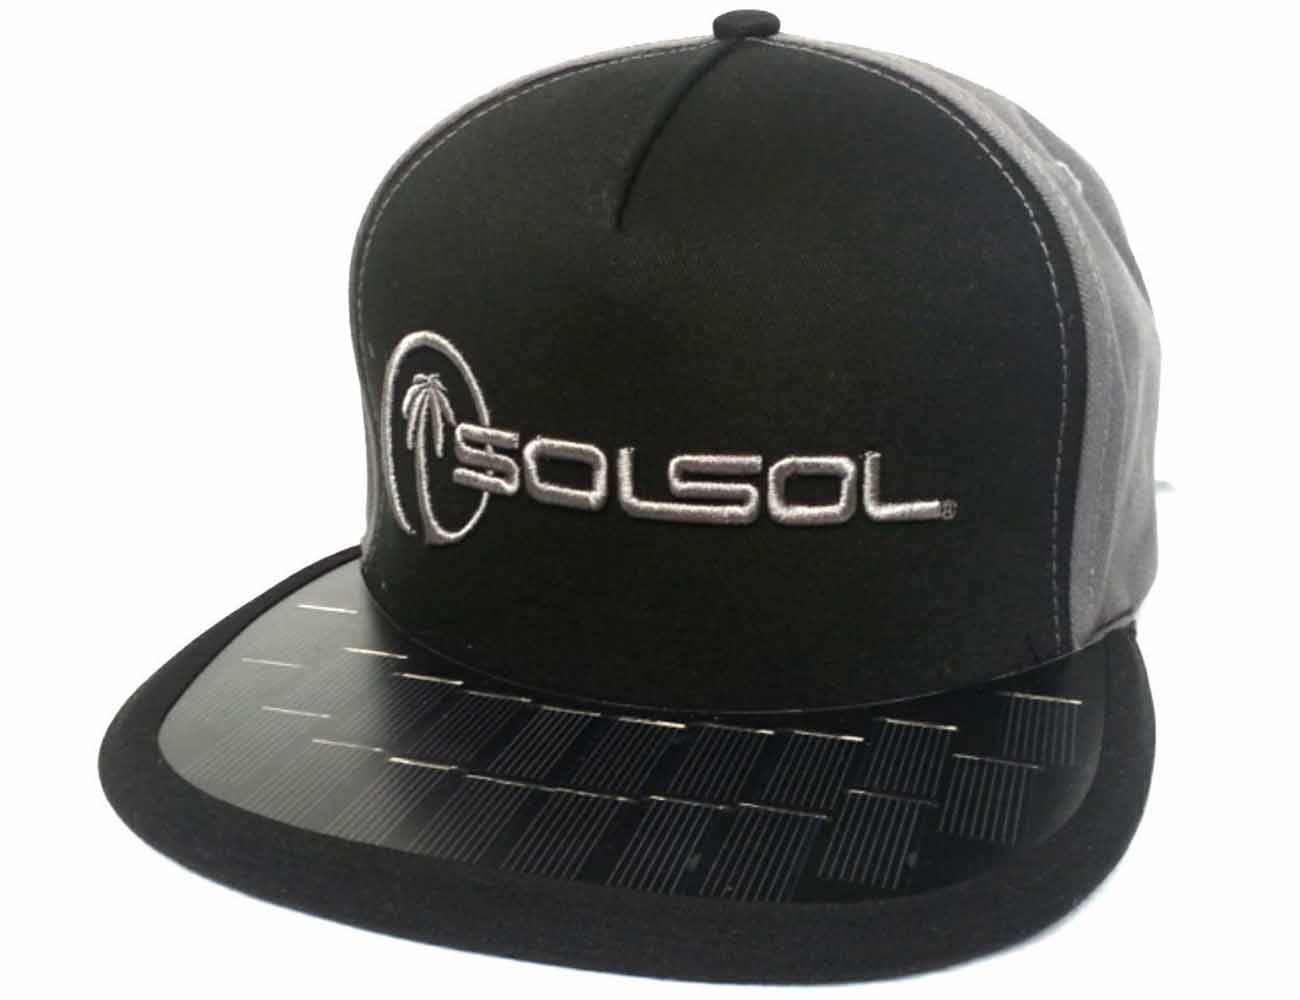 "Solar Hat iPhone6 Charger ""Battery-Free"" by SOLSOL"